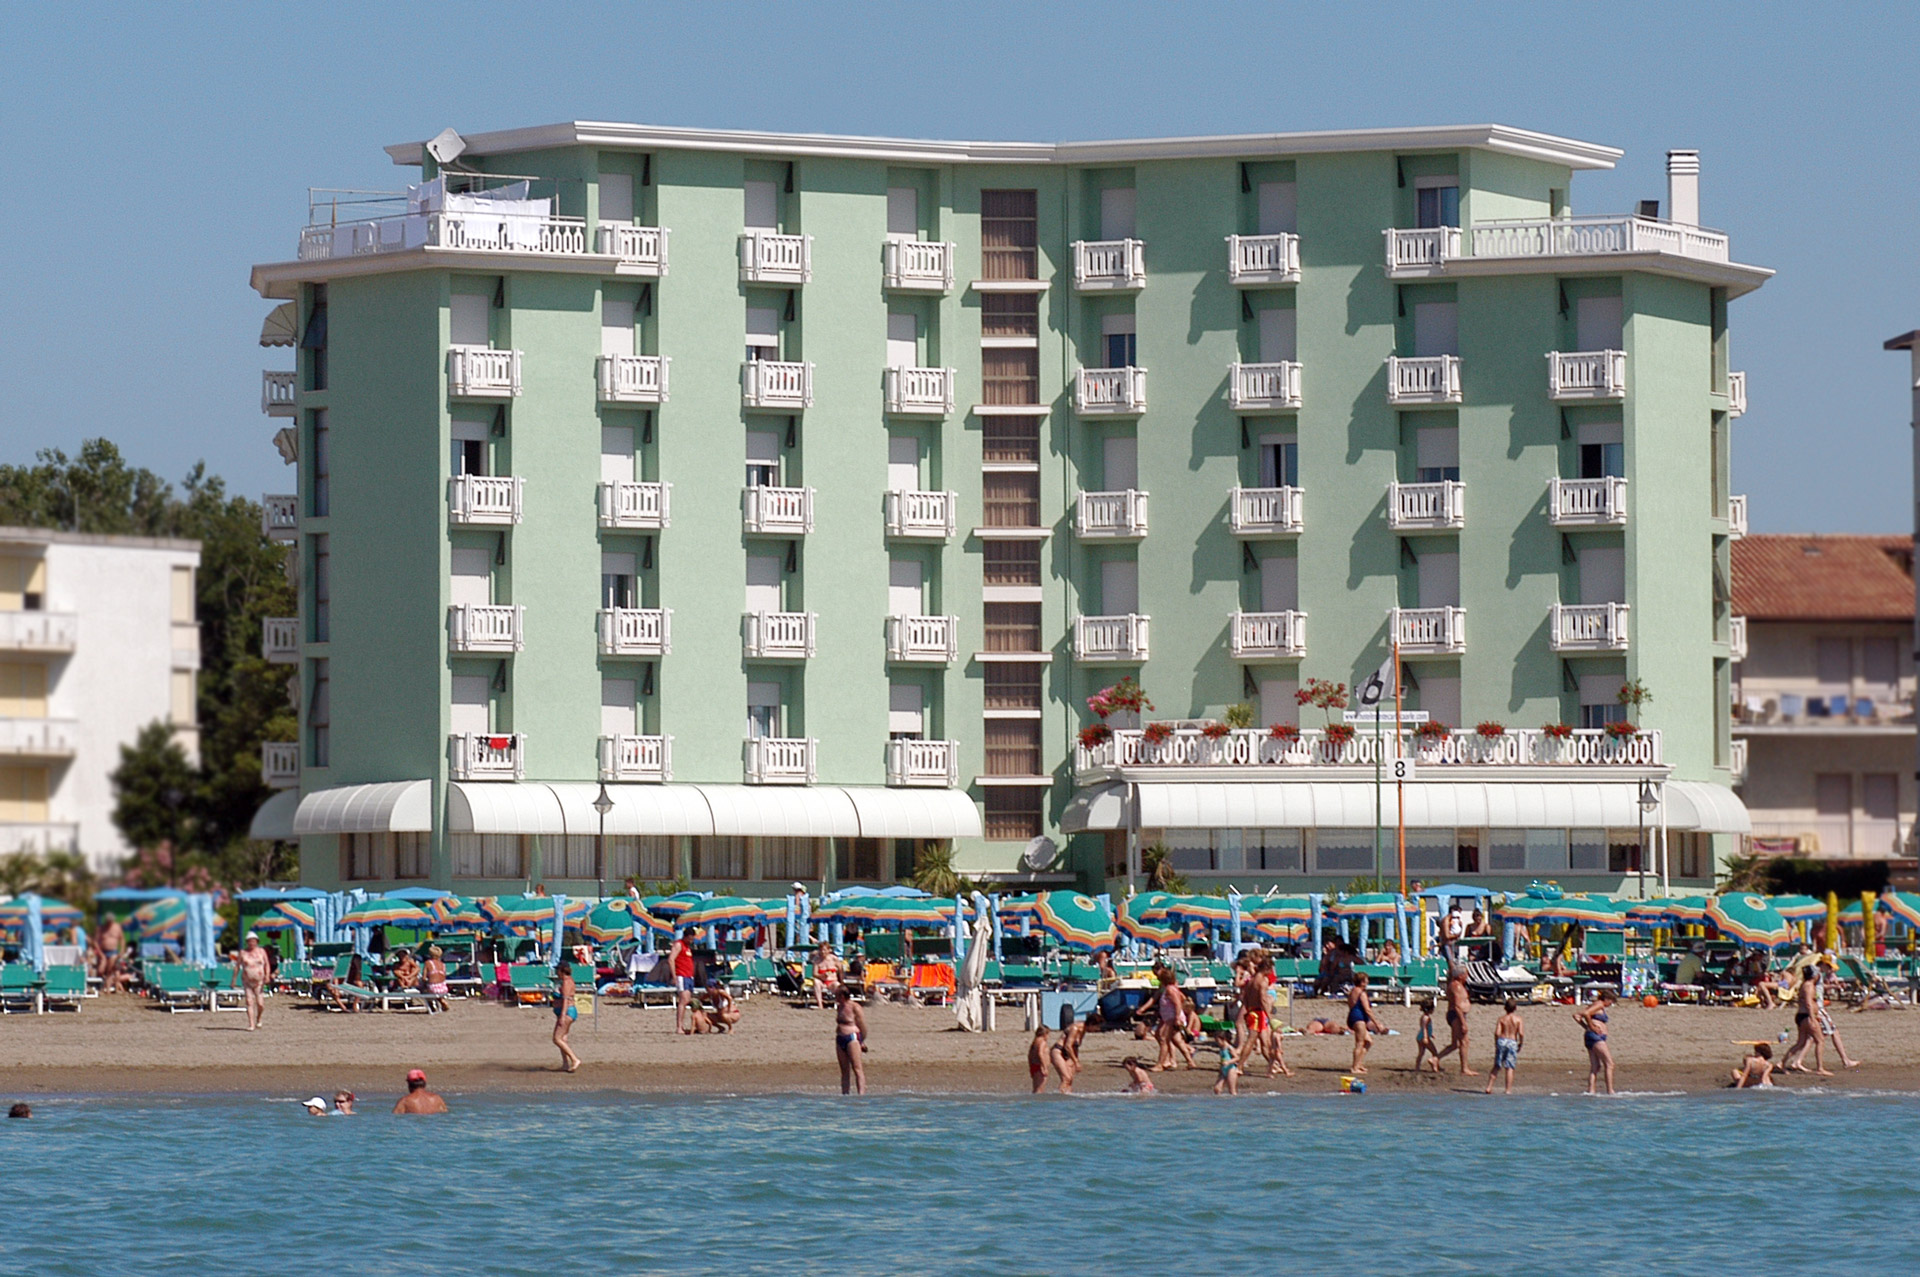 Hotel Montecarlo: family Hotel in Caorle